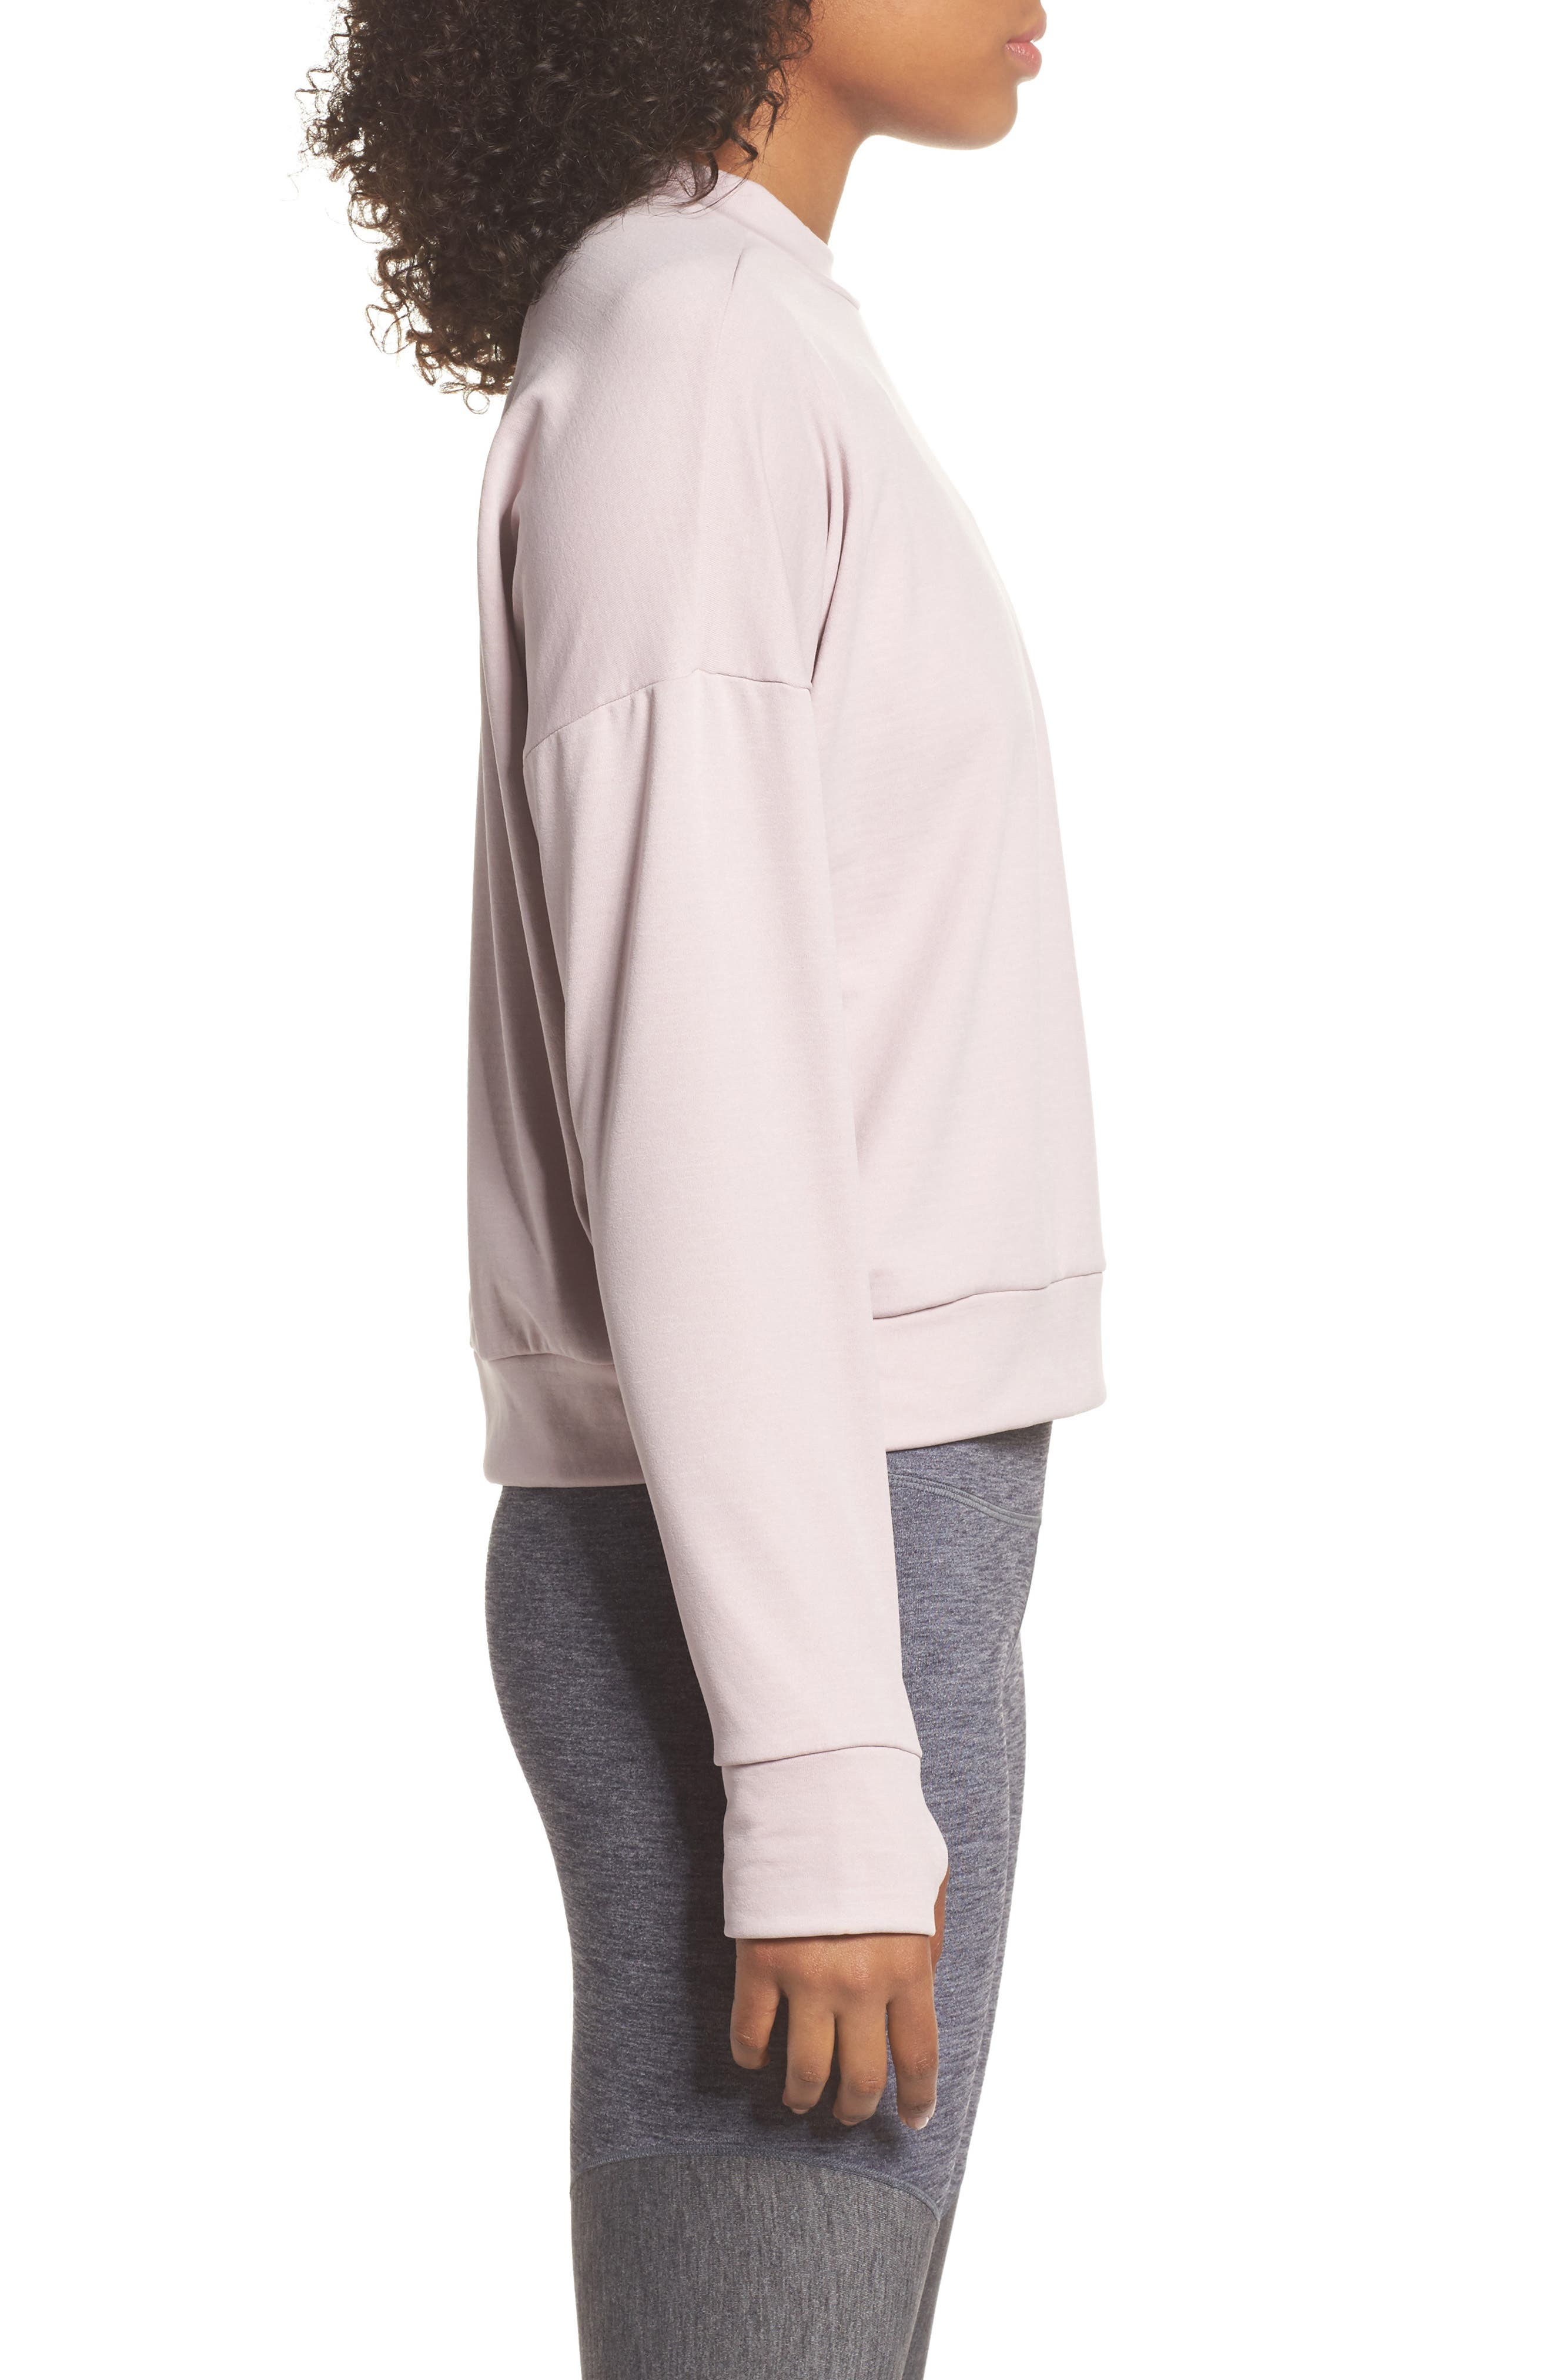 Therma Sphere Element Women's Running Top,                             Alternate thumbnail 3, color,                             Particle Rose